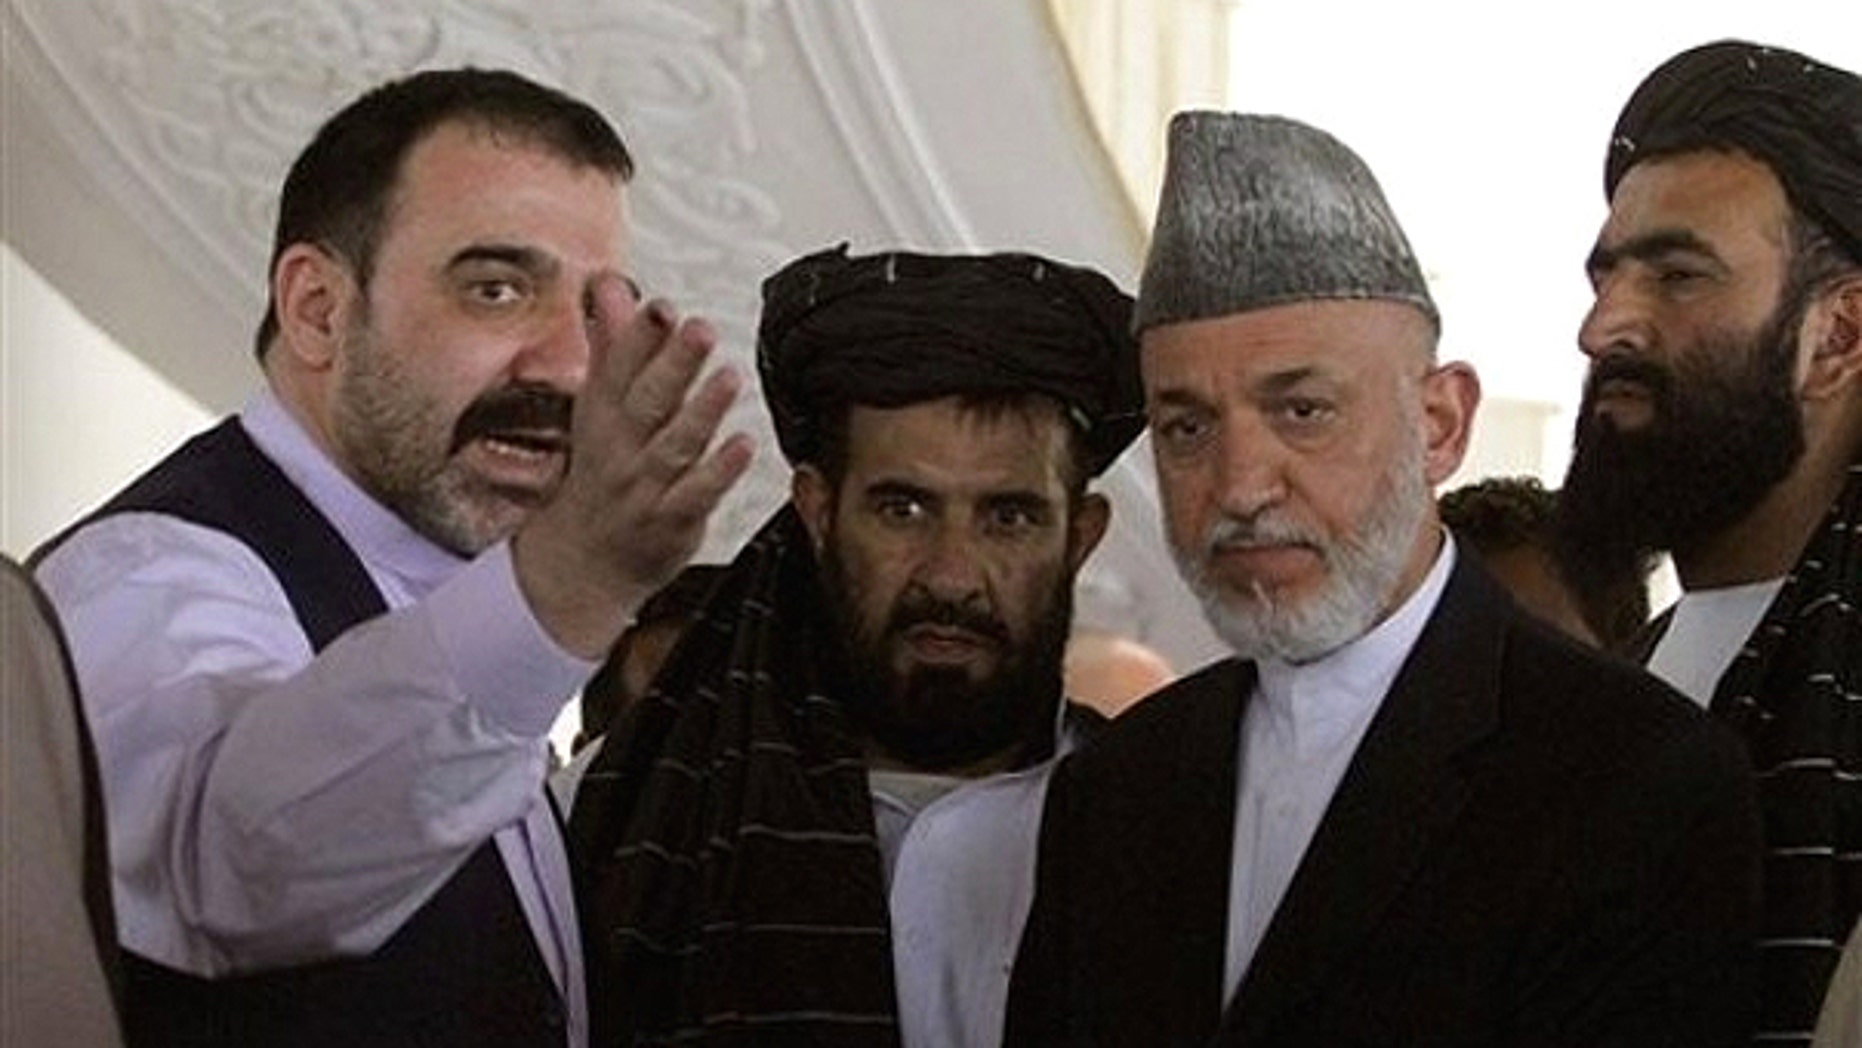 Oct. 9, 2010: Afghan President Hamid Karzai, second from right, is met by his half brother Ahmad Wali Karzai, left, in Argandab district of Kandahar province, south of Kabul, Afghanistan.